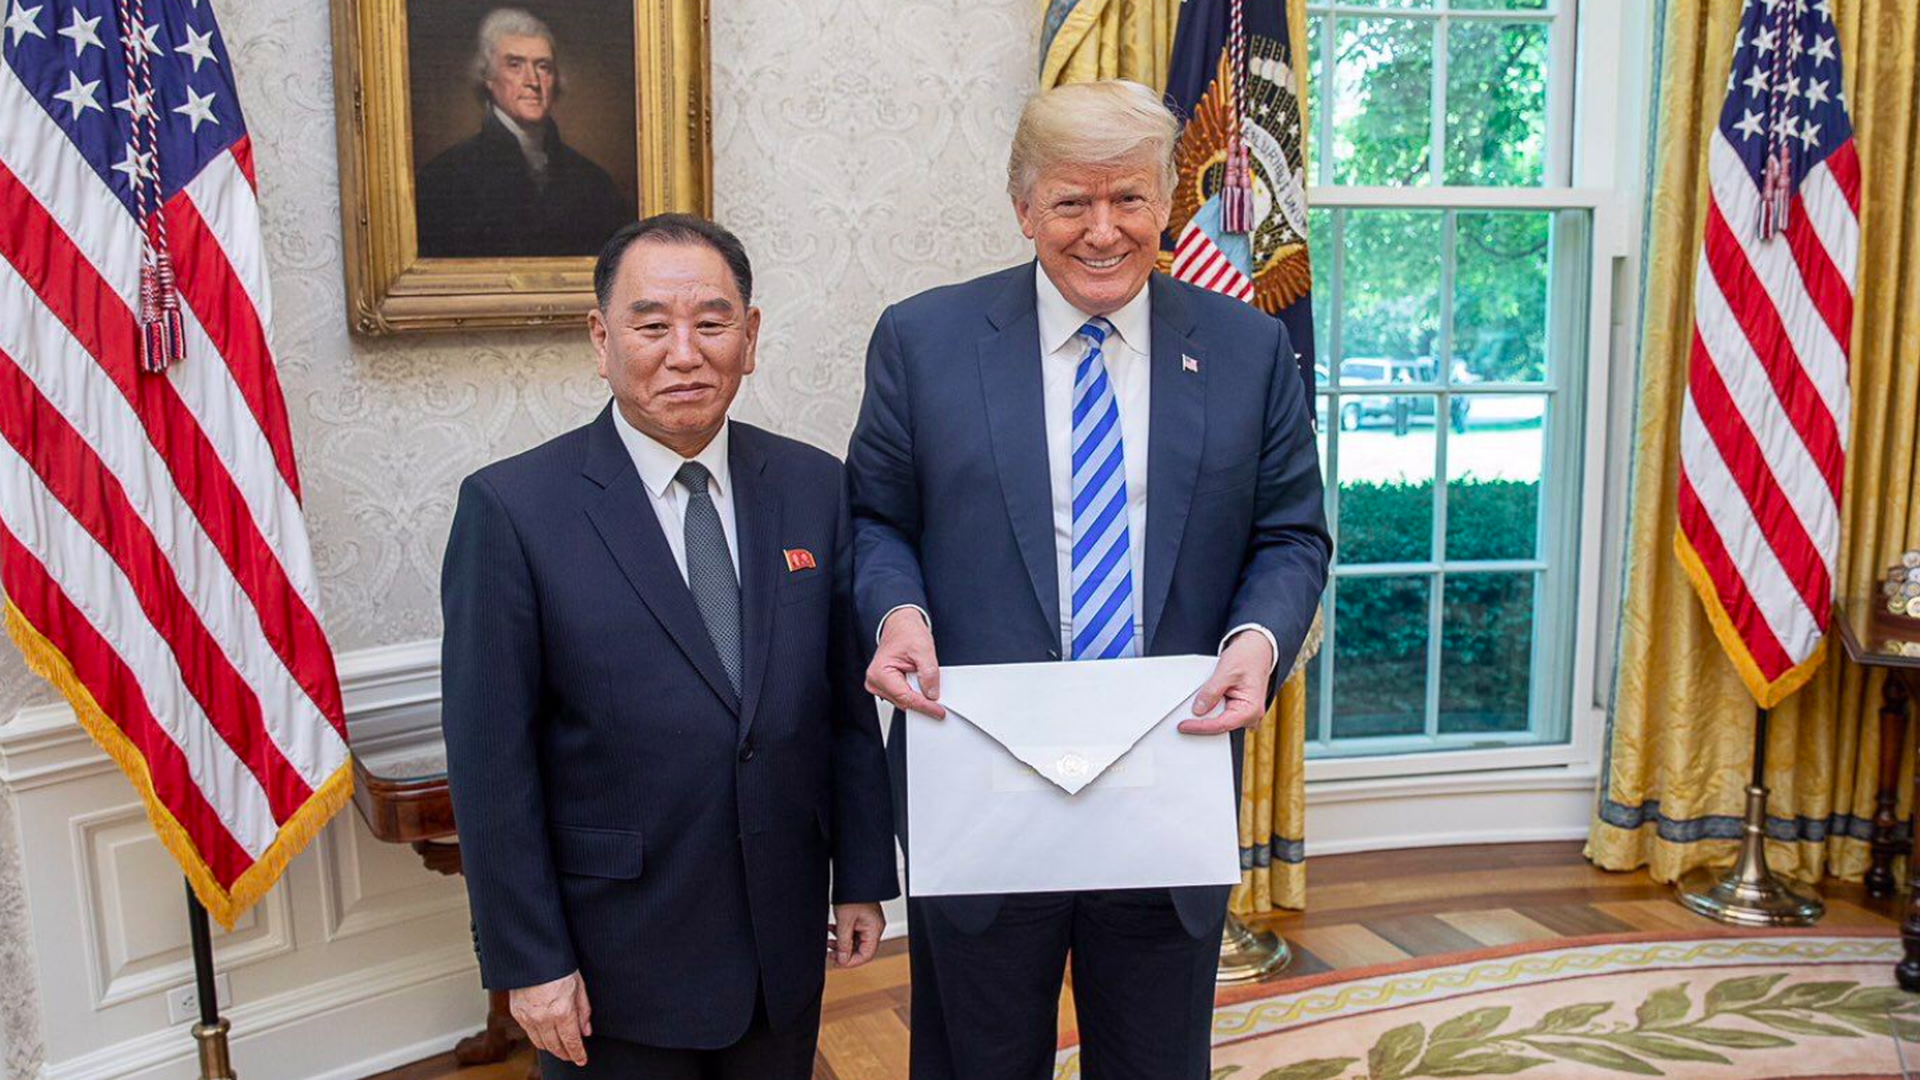 Trump holds a letter from Kim